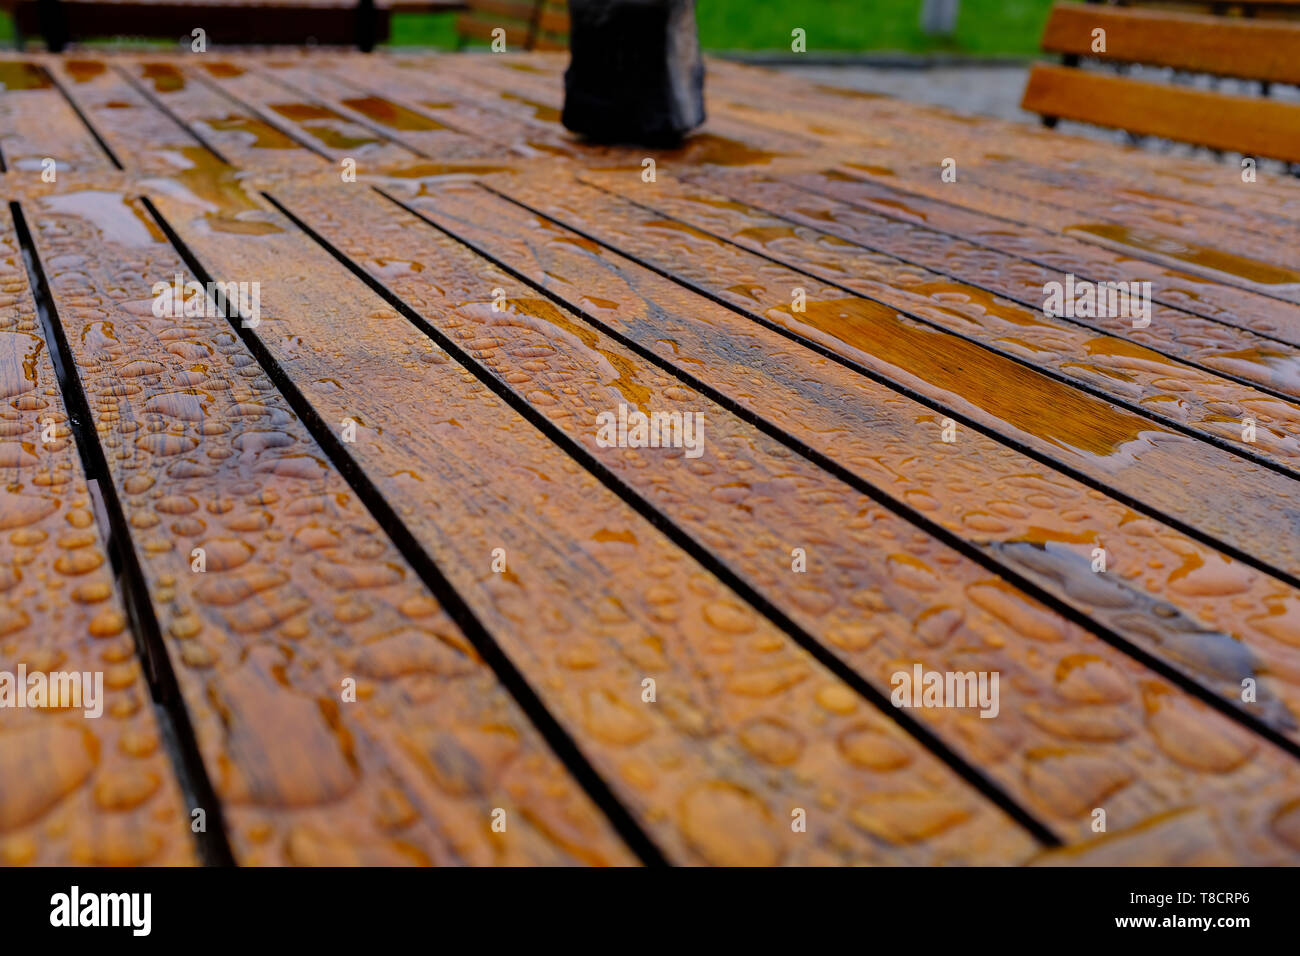 Rain water on an outdoor table - Stock Image